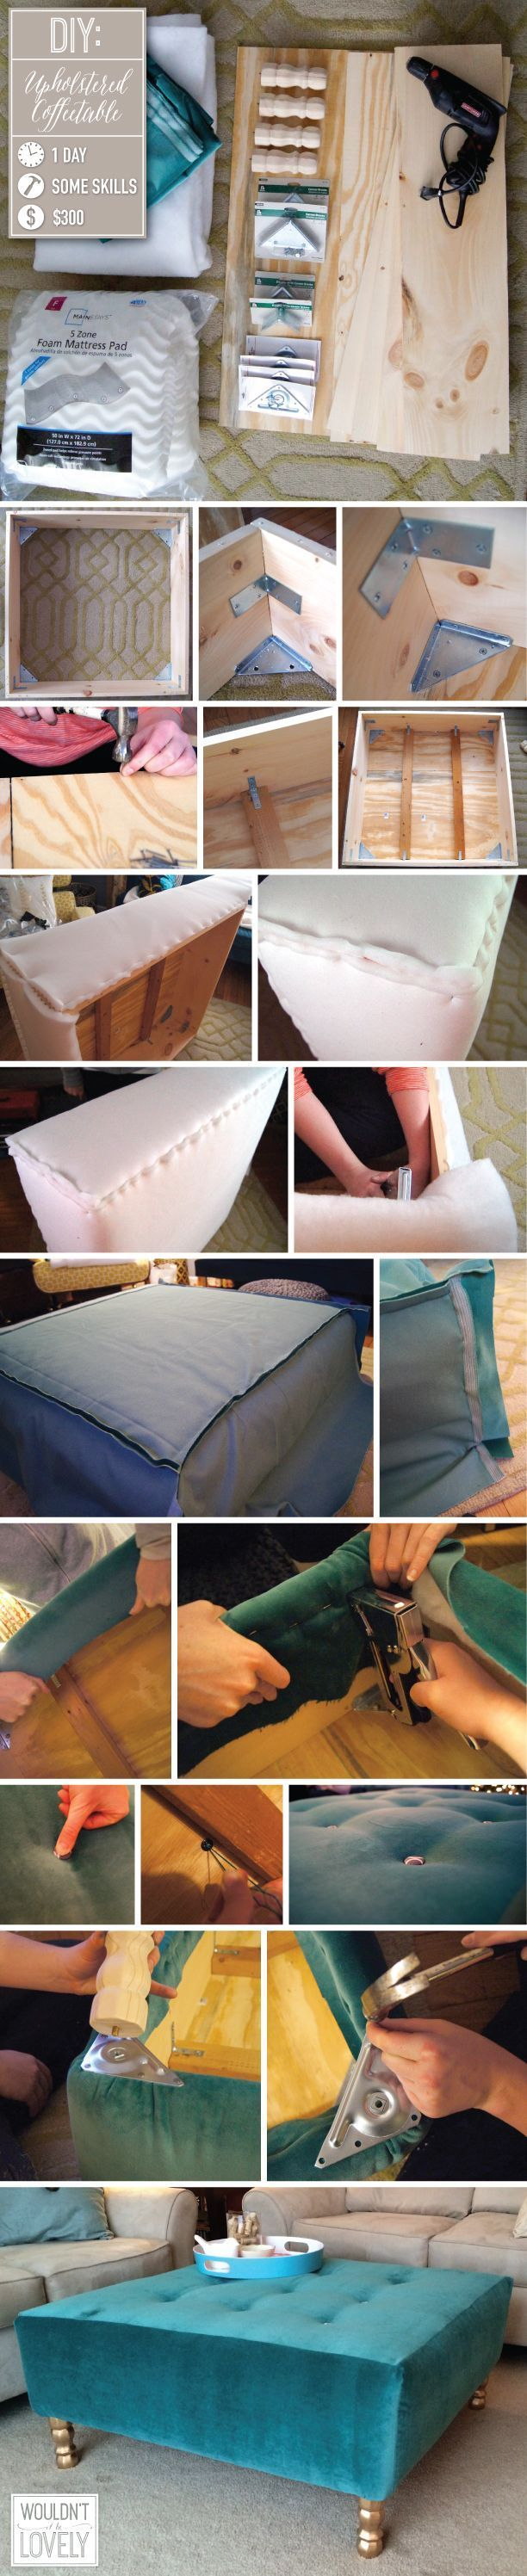 Upholstered Coffee Table Diy Diy Upholstered Coffee Table Pictures Photos And Images For